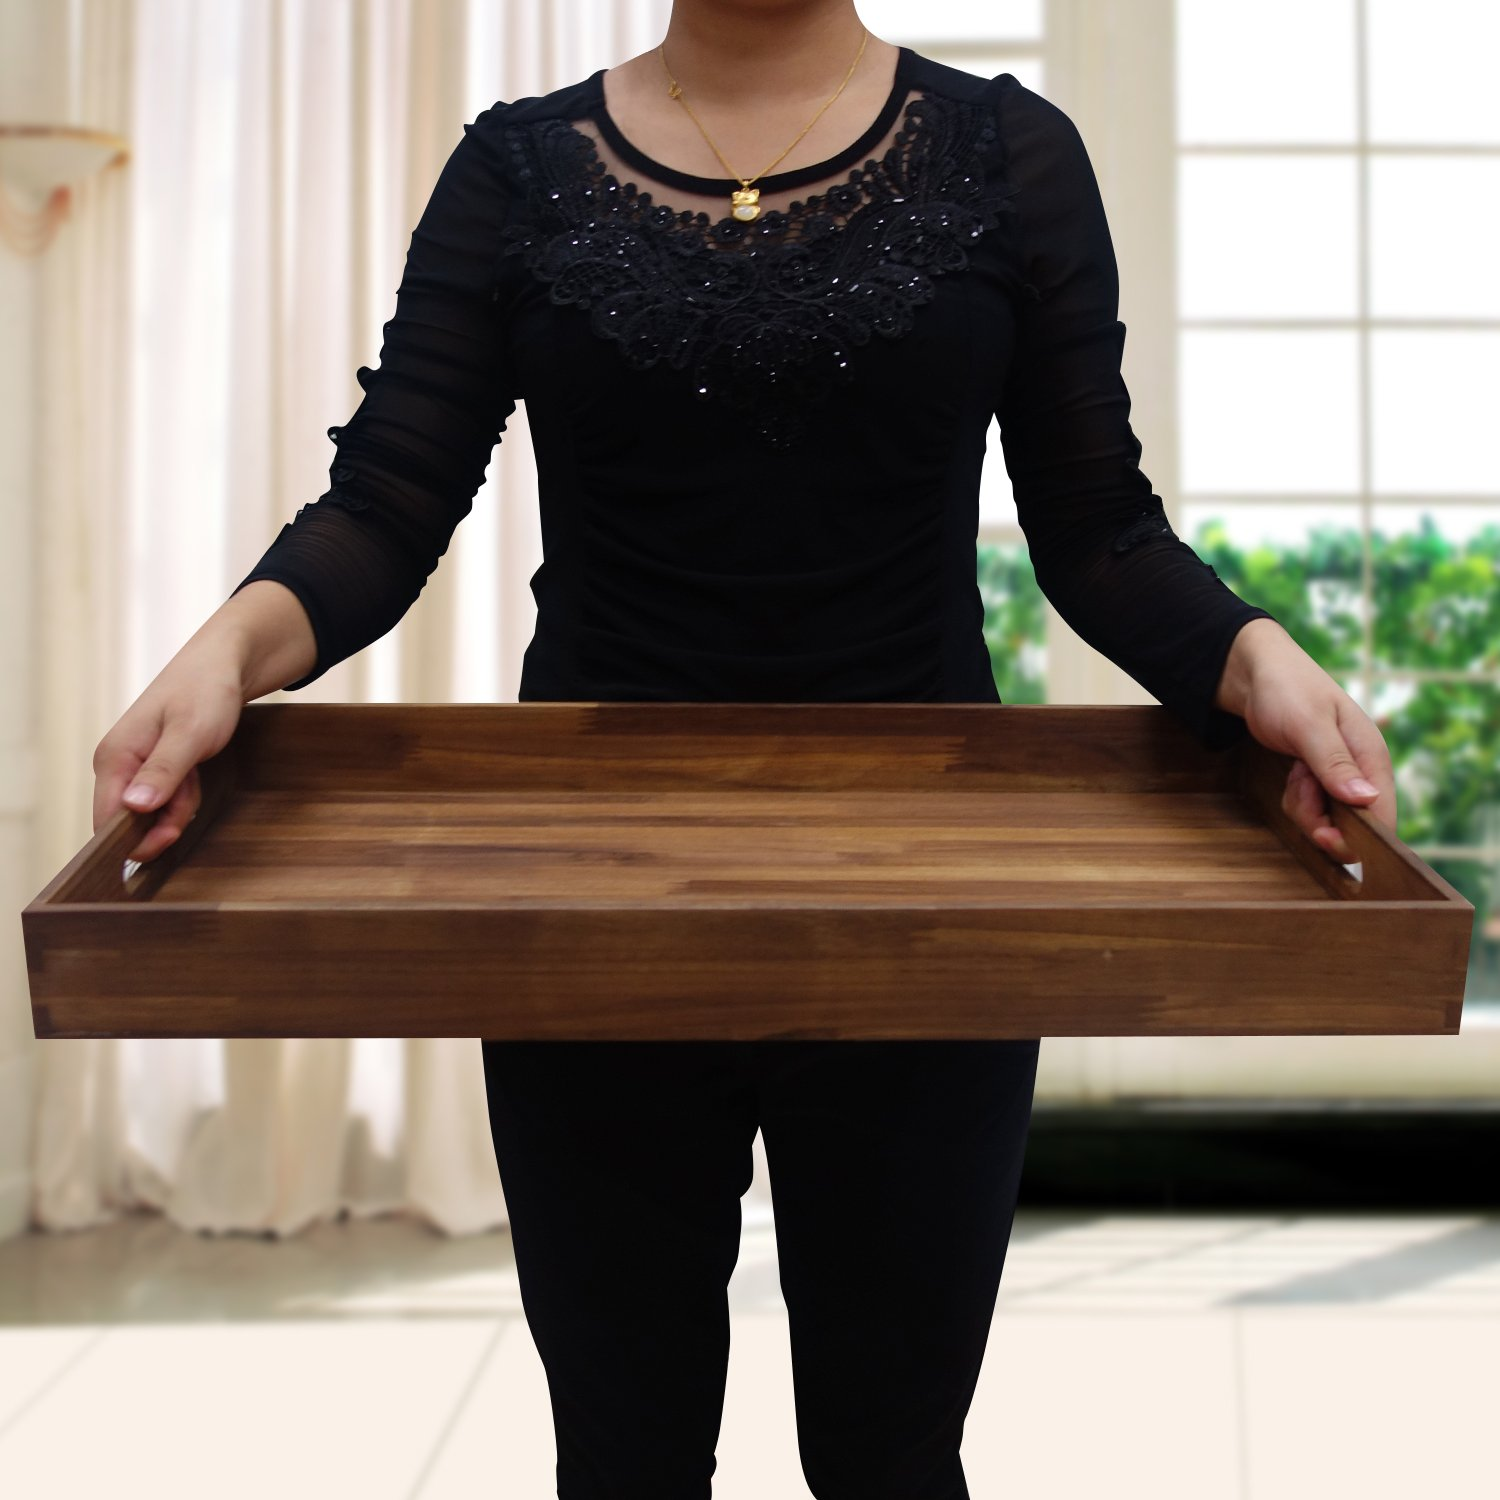 Details About Glitz Star Square Ottoman Tray Teak Wood Serving Tray Extra Large24 X 13 Inch